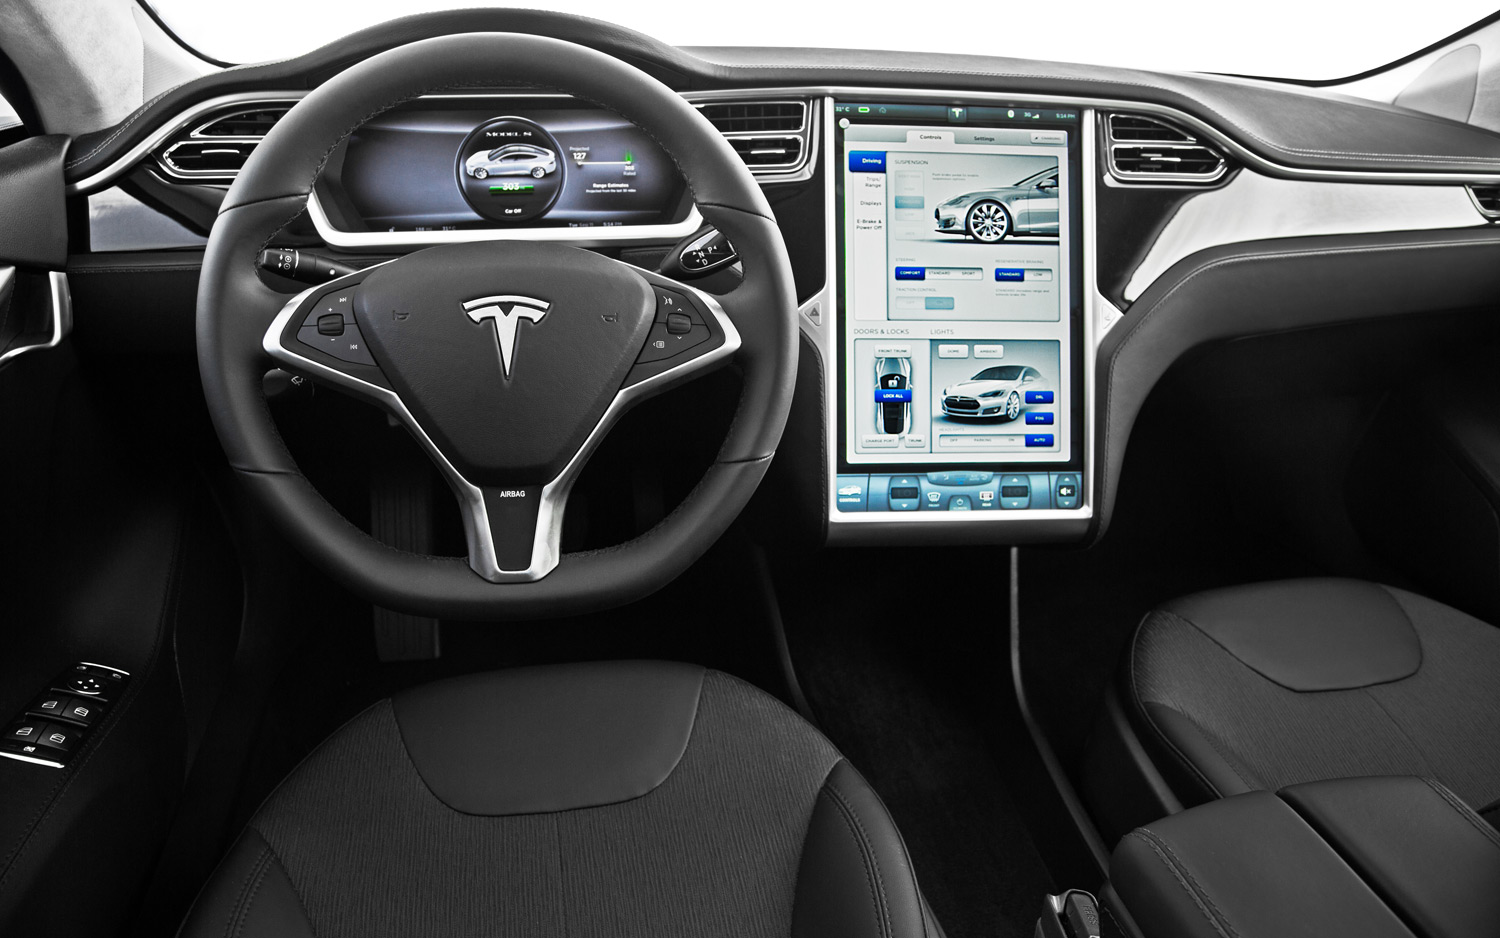 2013 Tesla Model S 60 Cockpit and Head Unit Interior